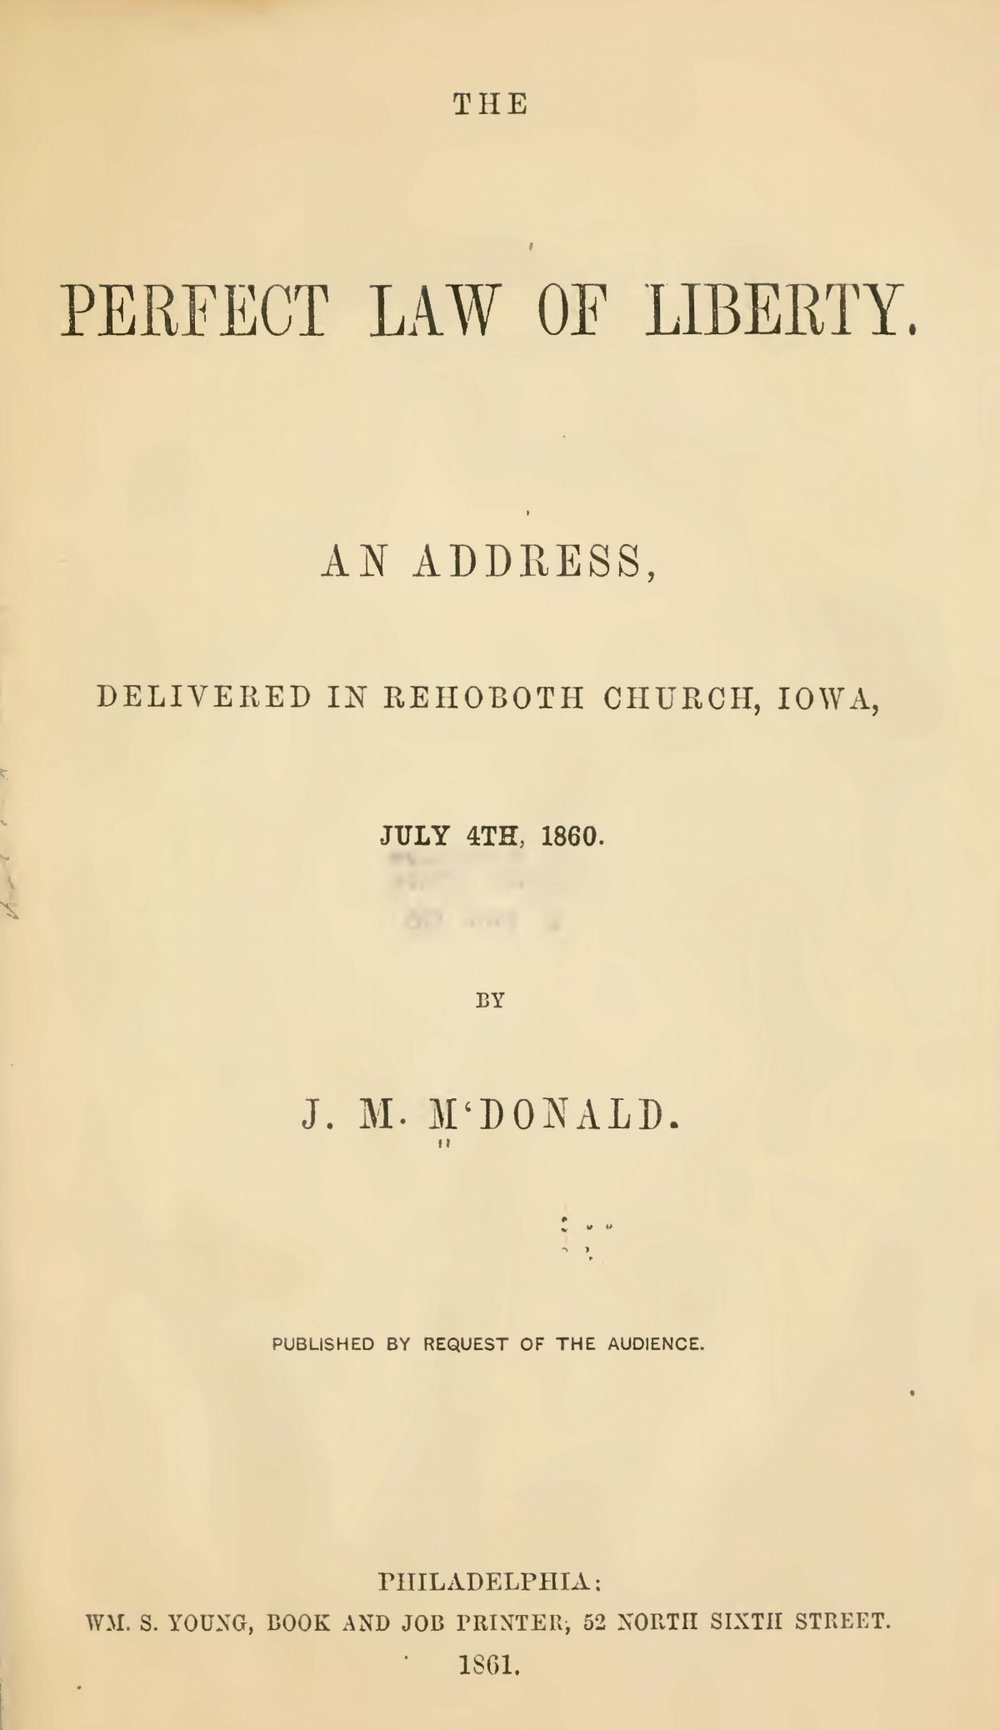 McDonald, James Madison, The Perfect Law of Liberty Title Page.jpg